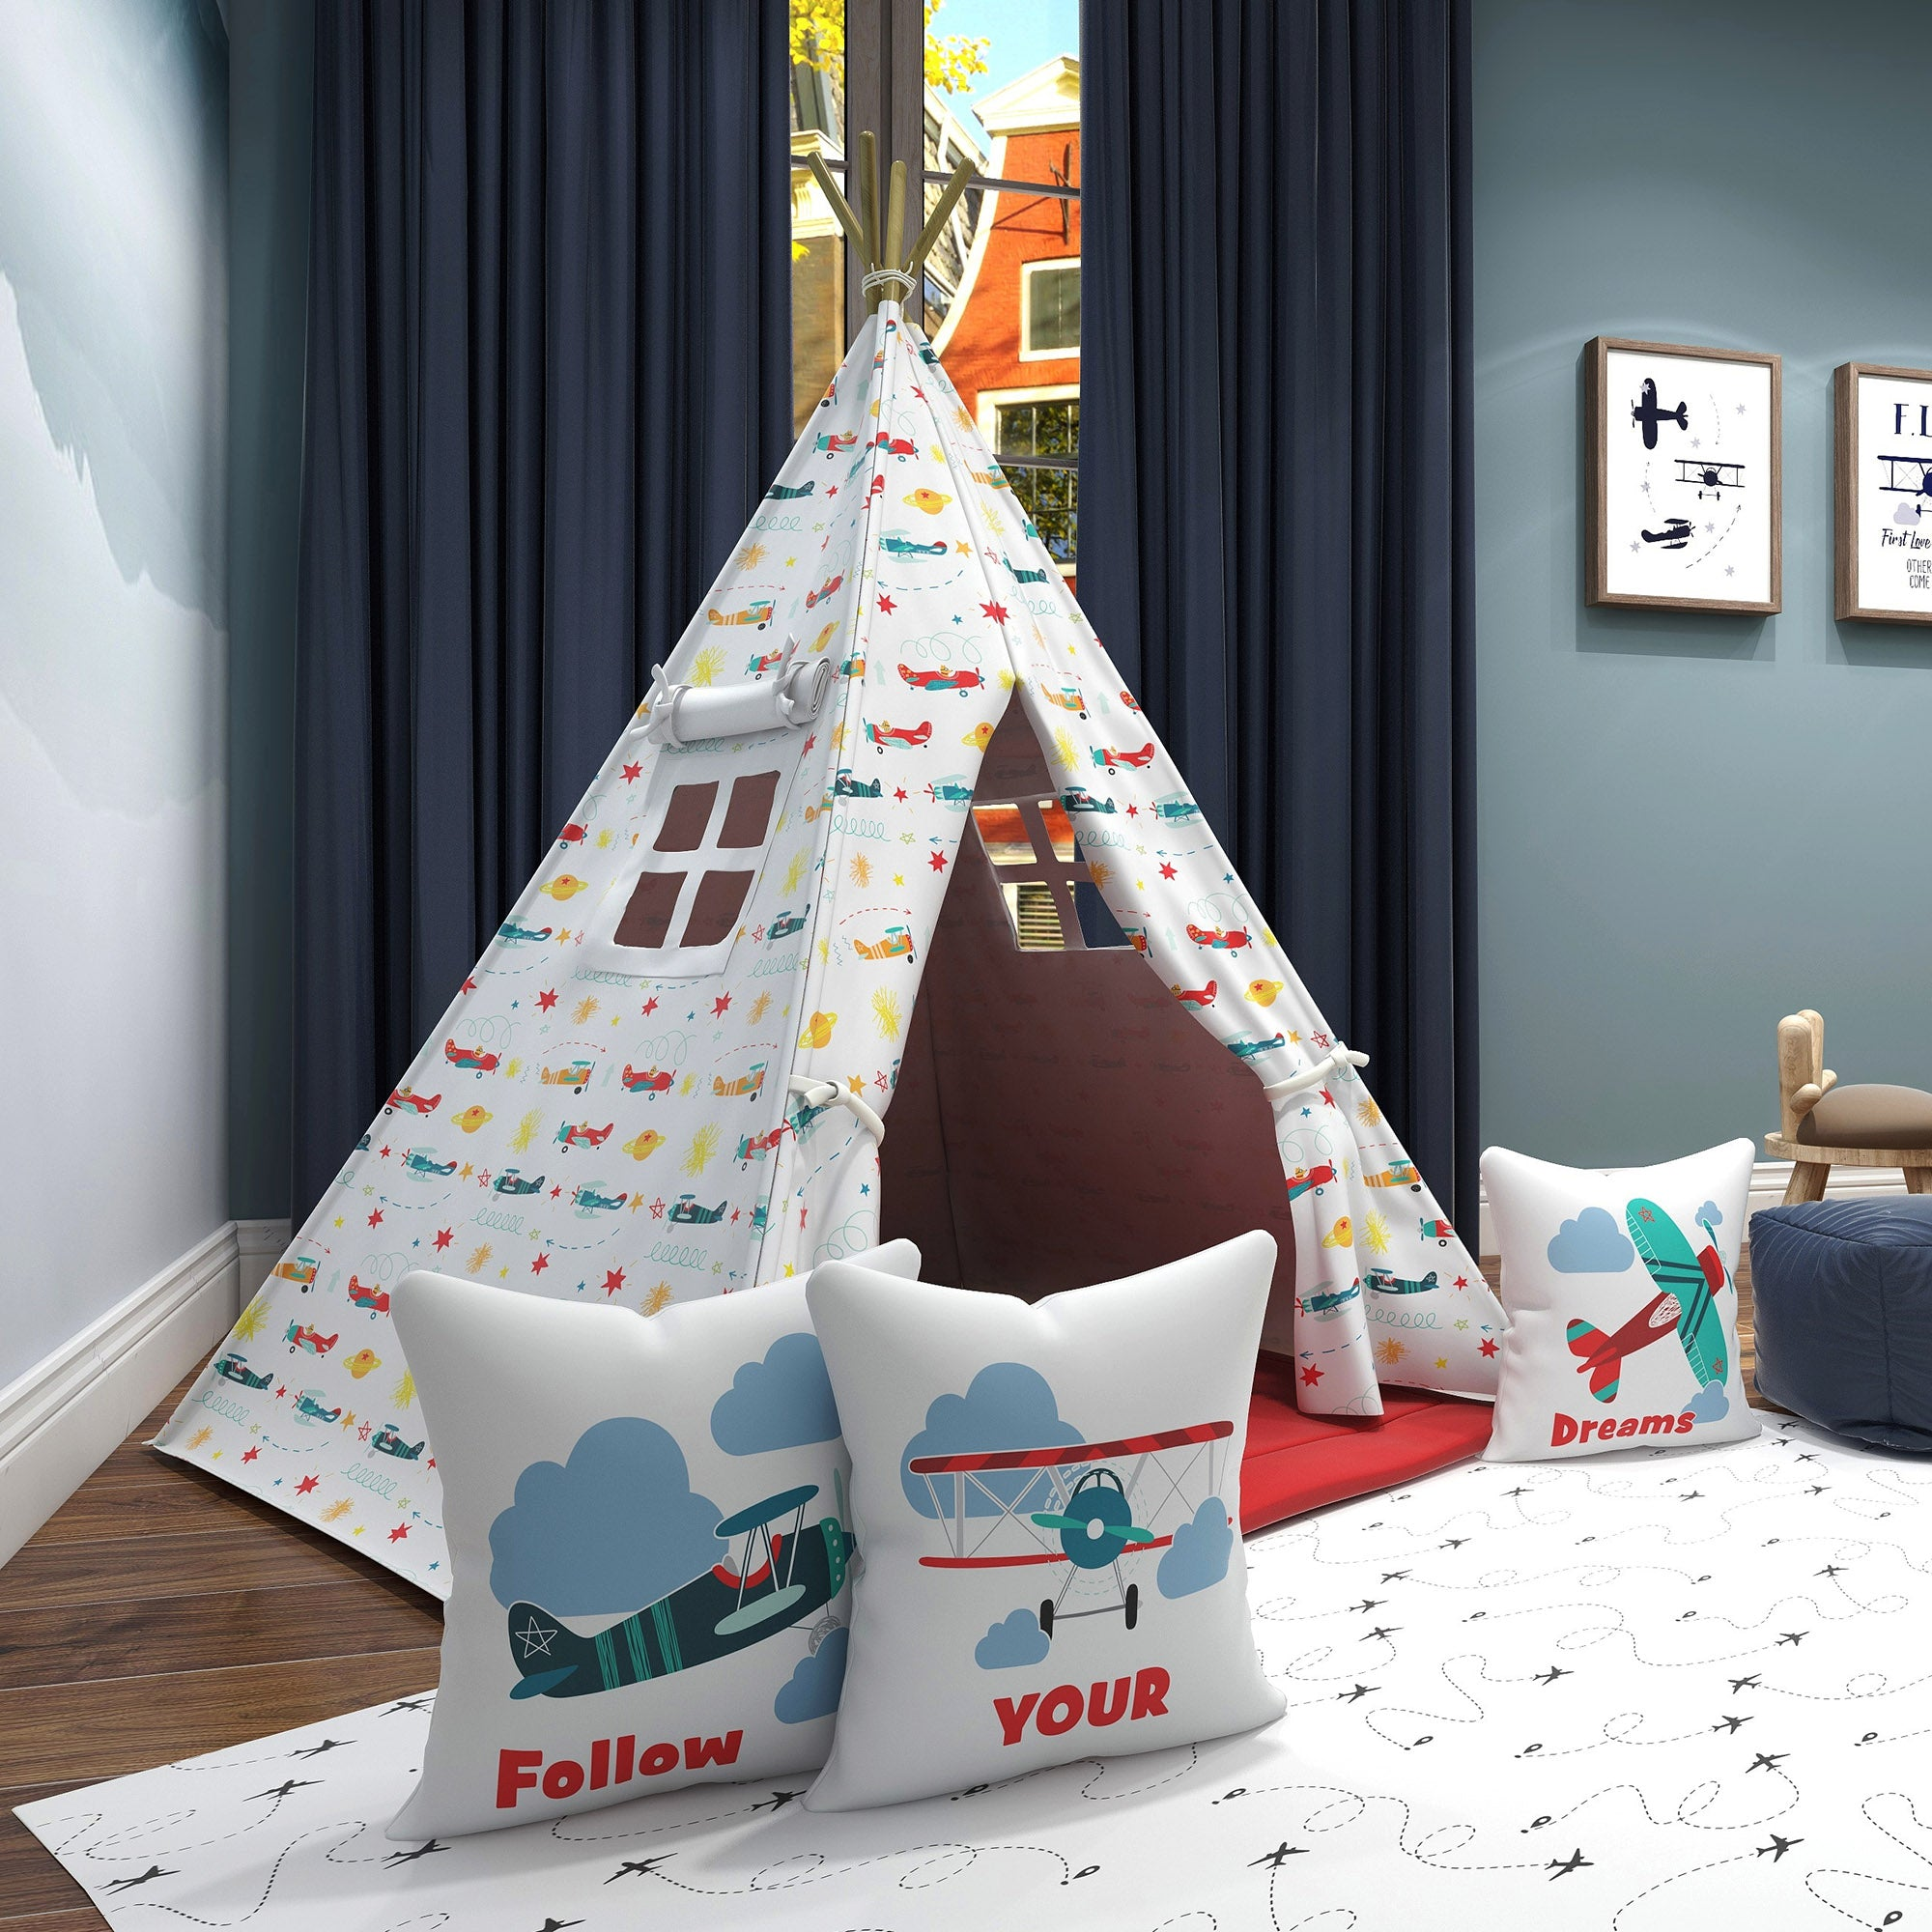 Kids Teepee, Airplane Decor Themed Room - Snuggly Landing Collection